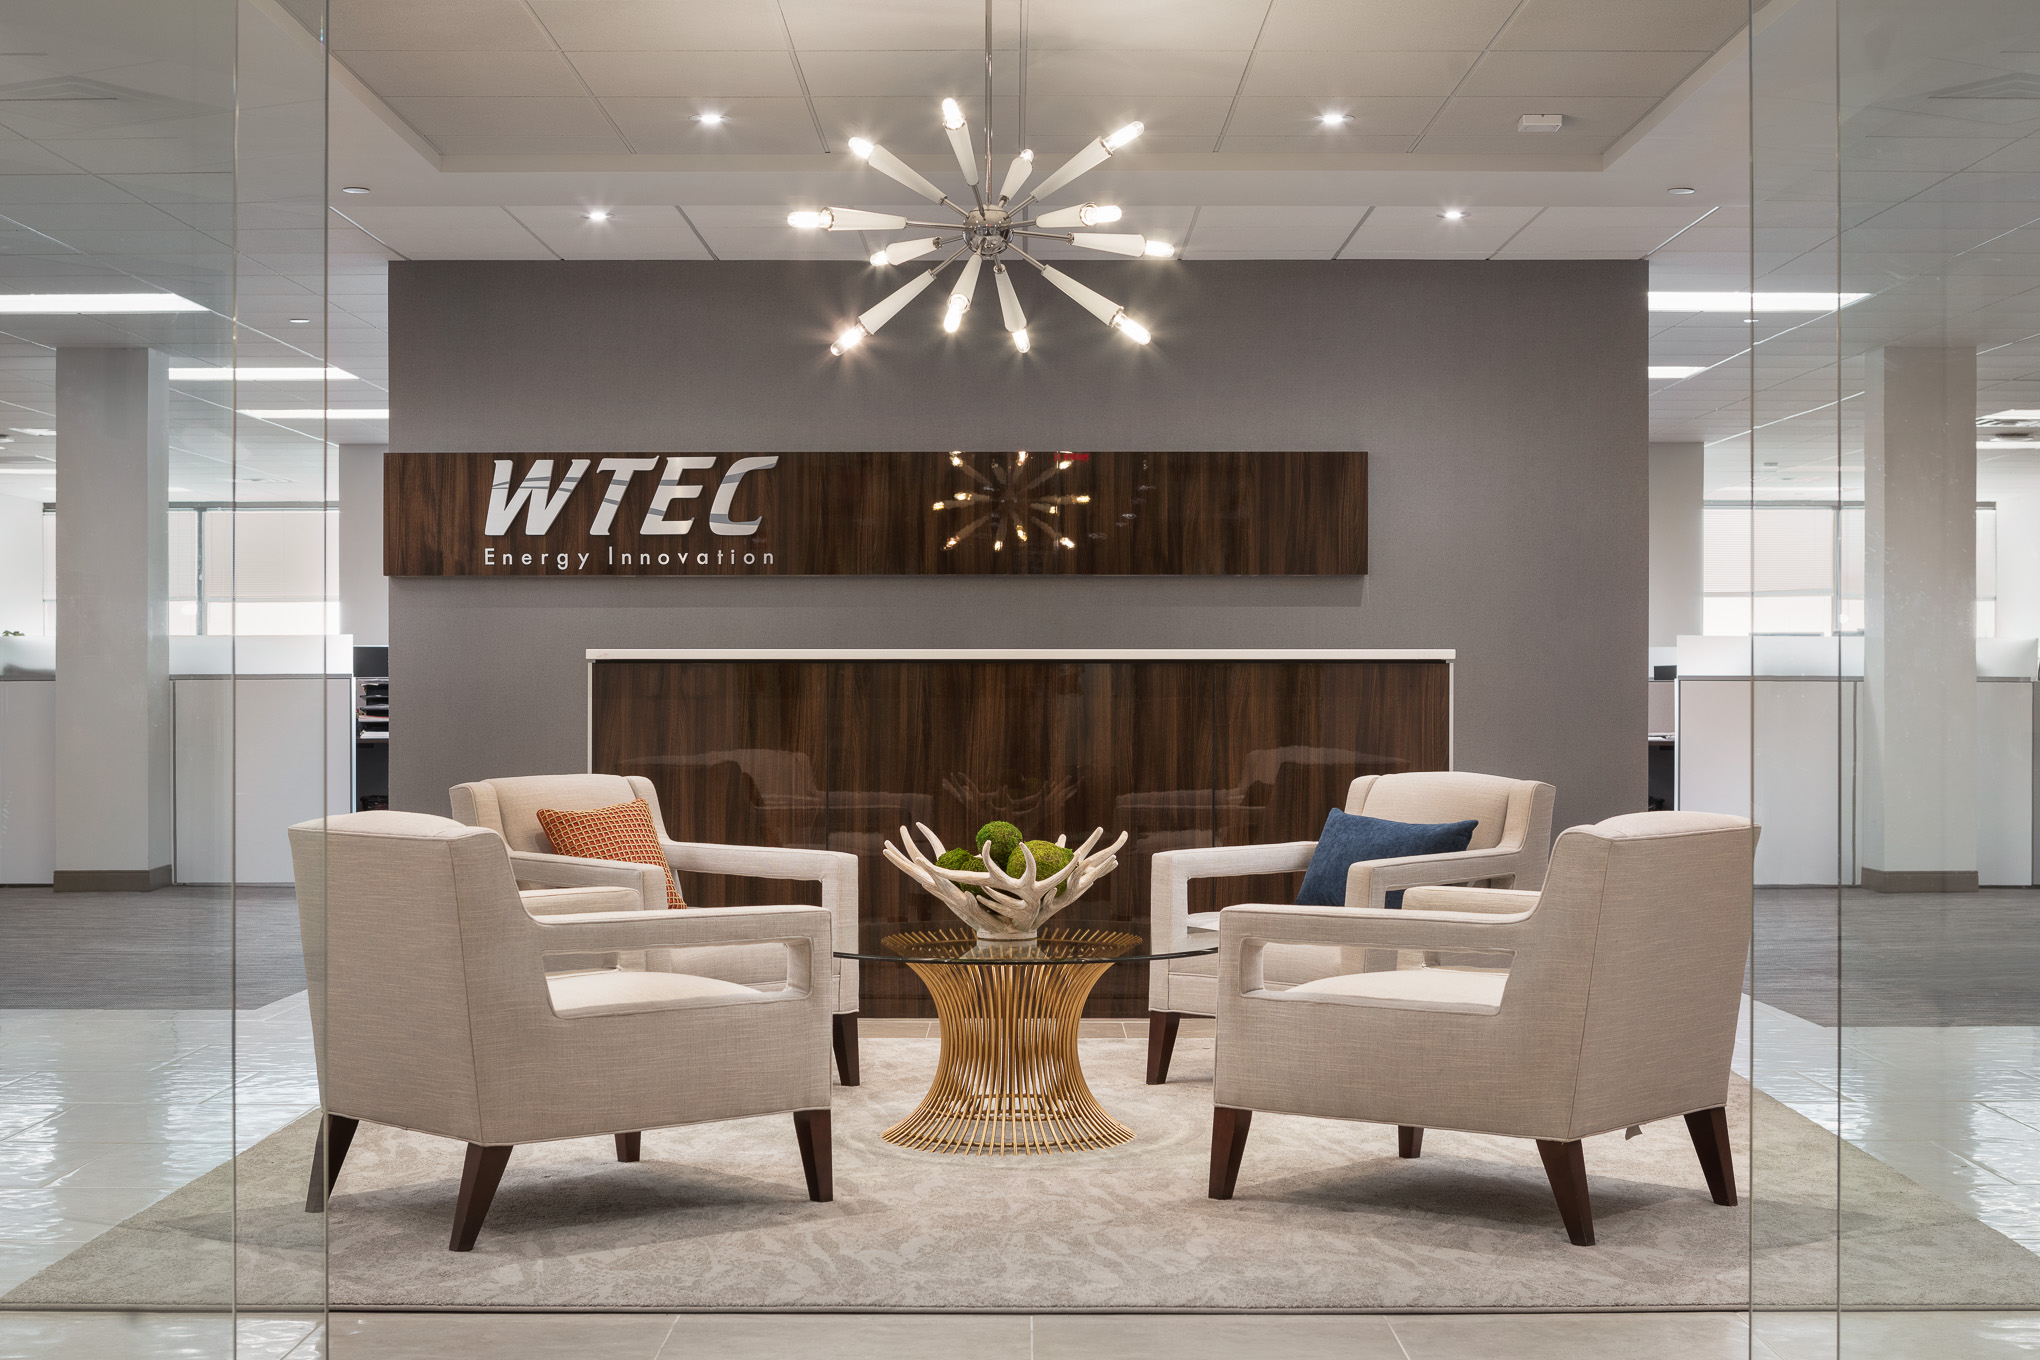 WTEC Headquarters Hasbrouck Heights NJ CK Design & WTEC Headquarters Hasbrouck Heights New Jersey CK Design